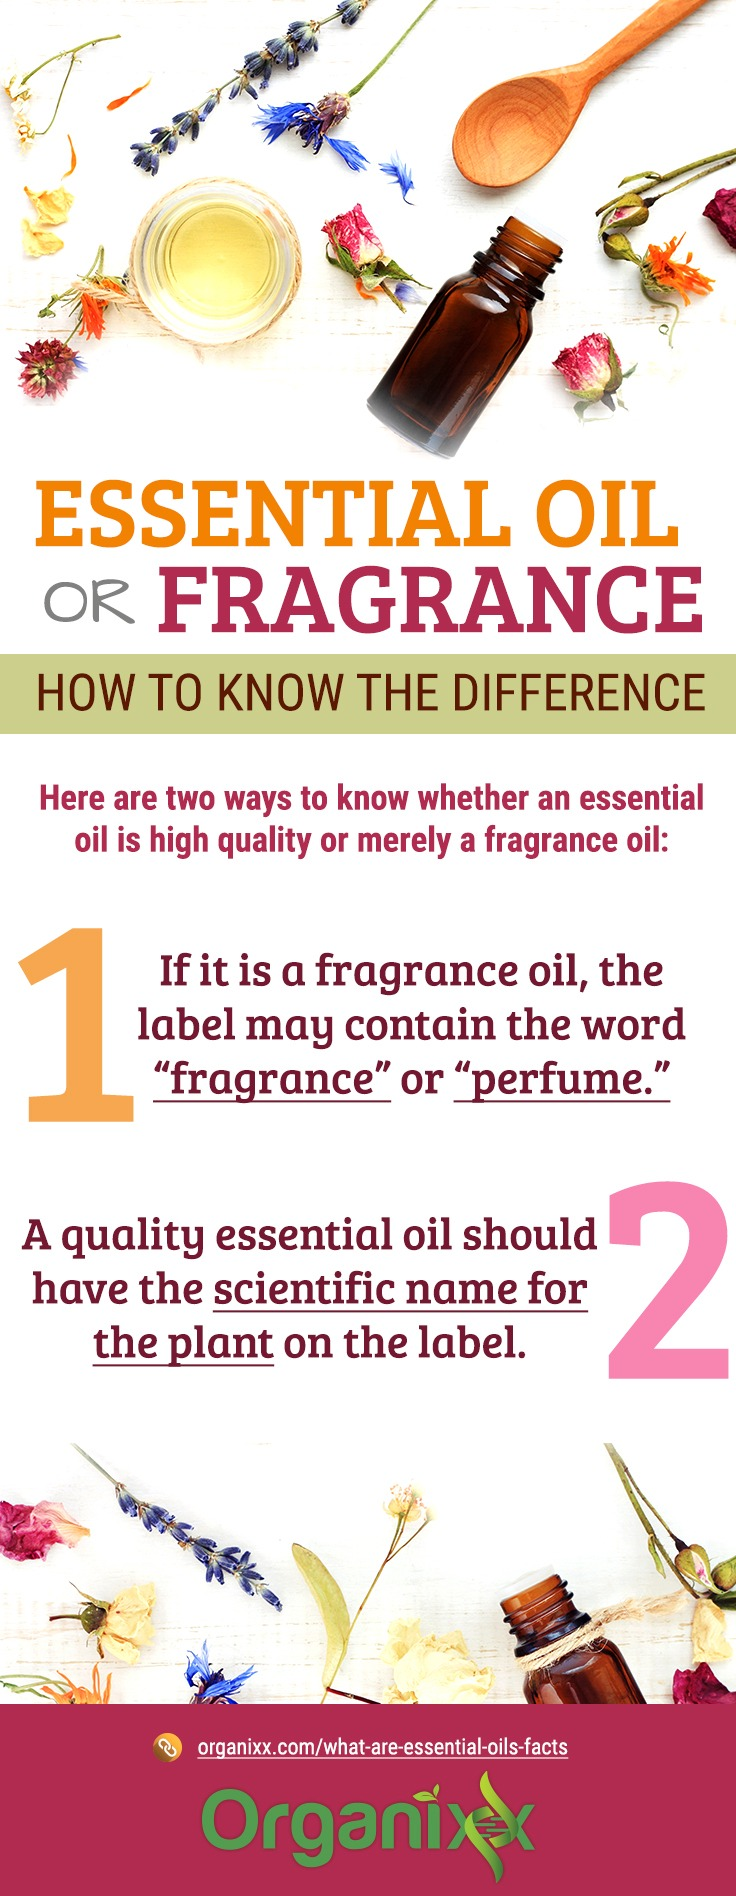 What Are Essential Oils (and What Are They Good For) What Are Essential Oils (and What Are They Good For) new pictures